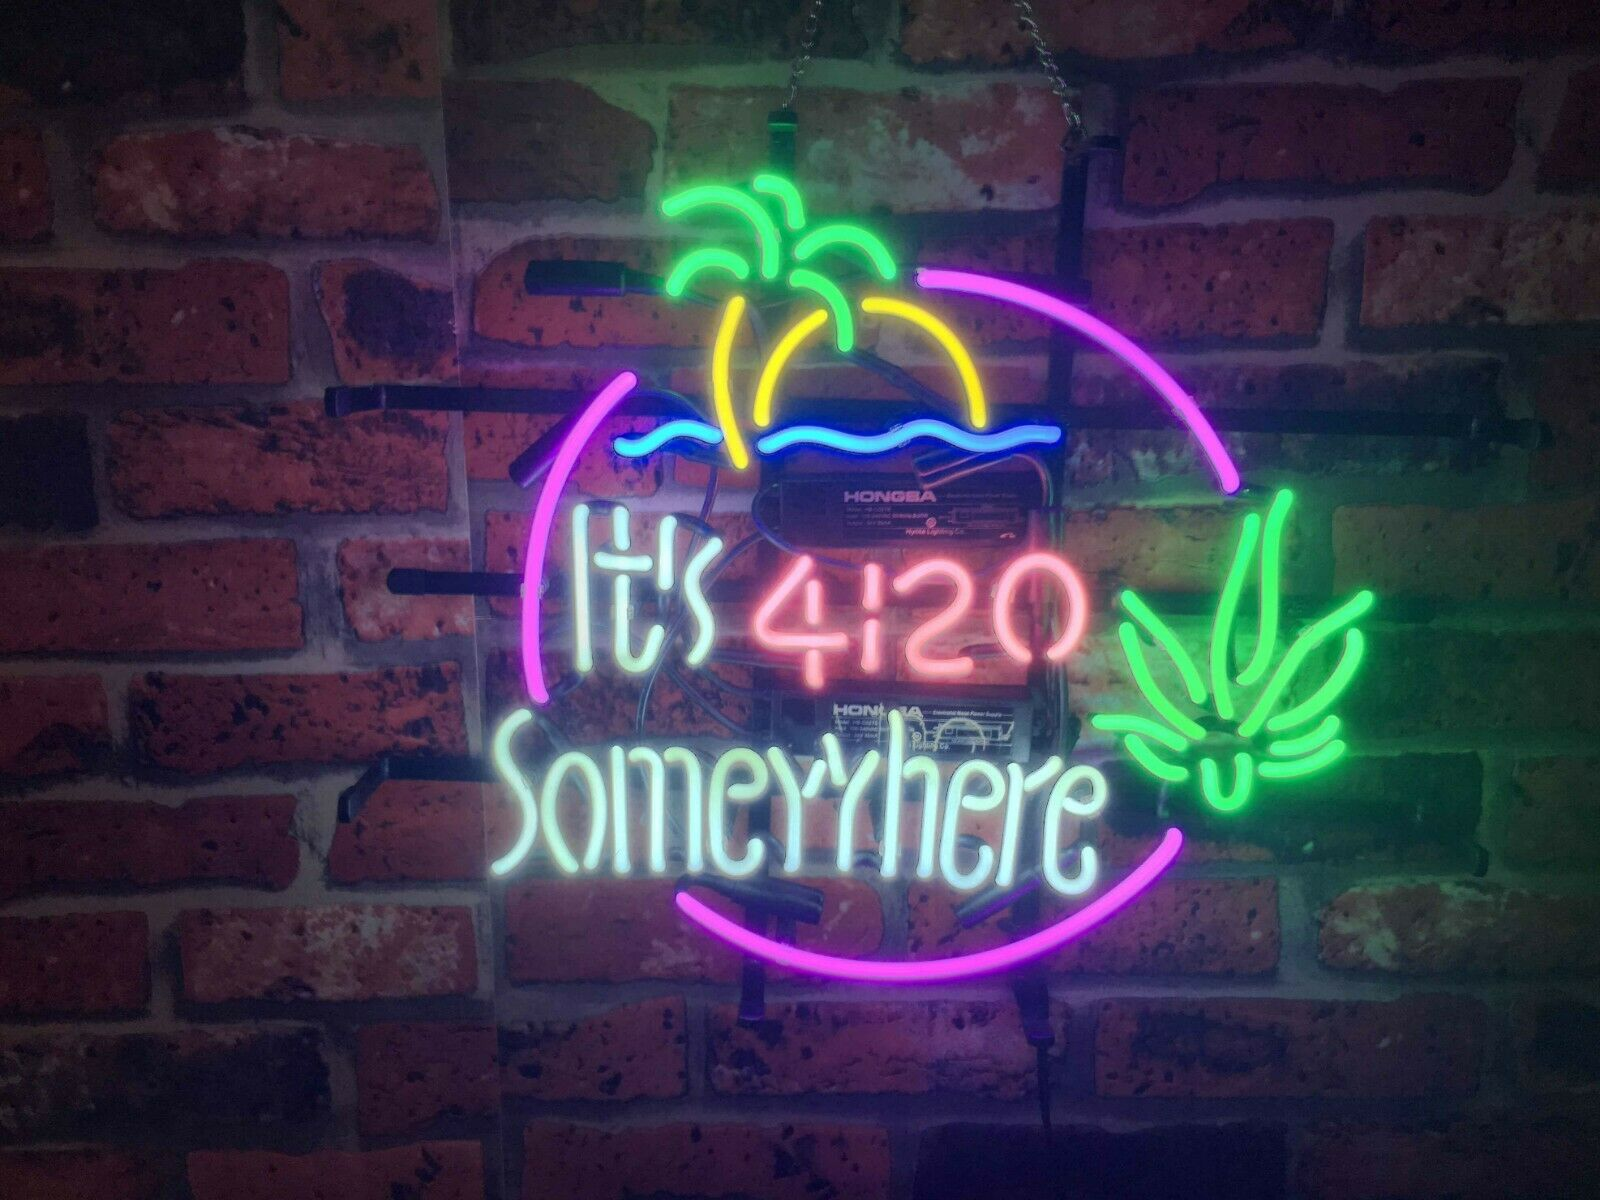 New It's 4 20 Somewhere Weed Leaf High Life Beer Bar Light L